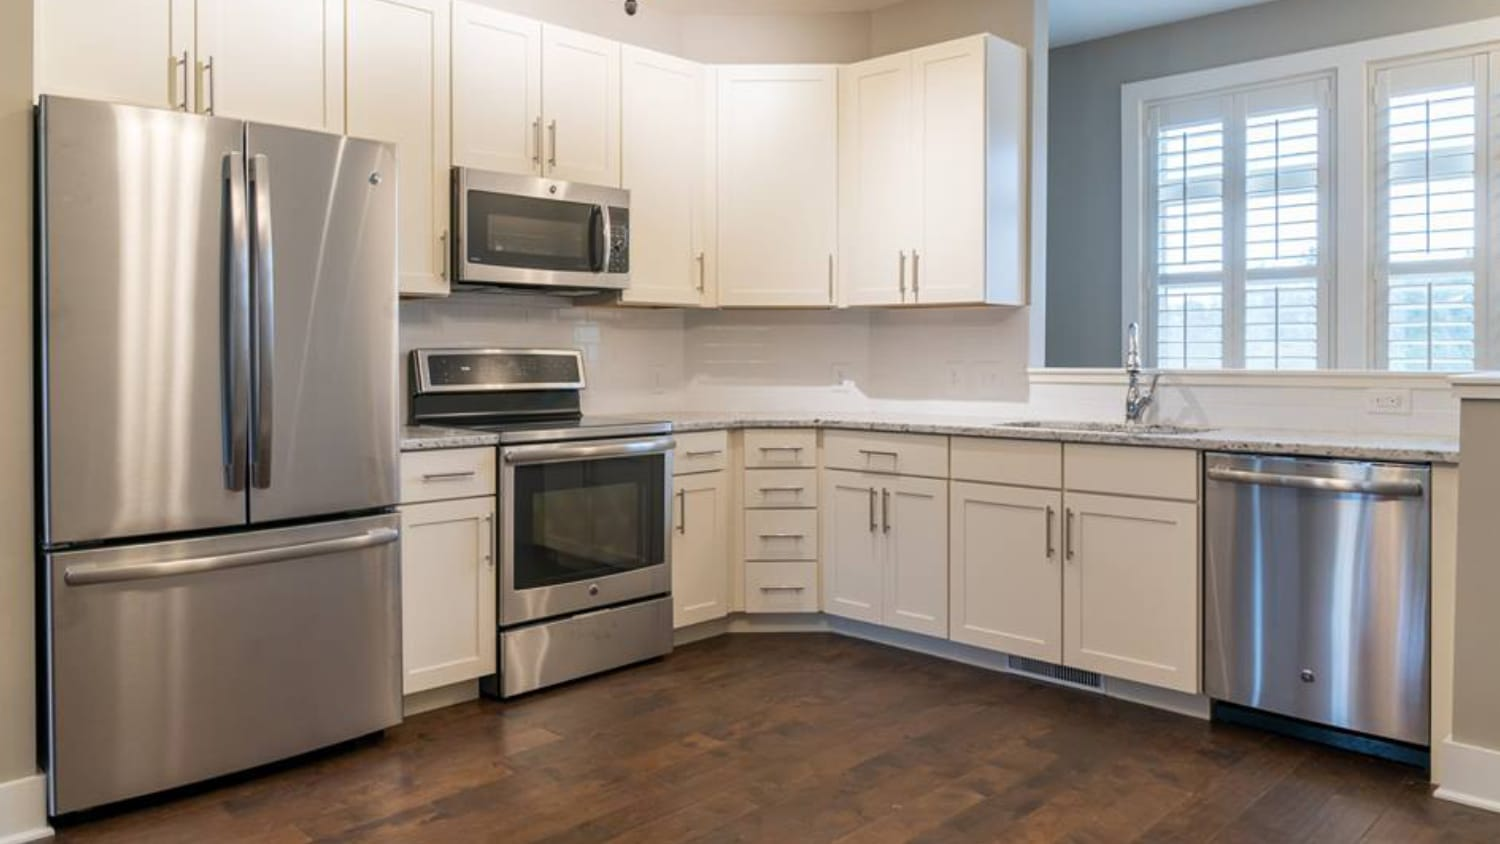 A kitchen with shiny new appliances at North Shore, a townhome complex on Centennial Campus.